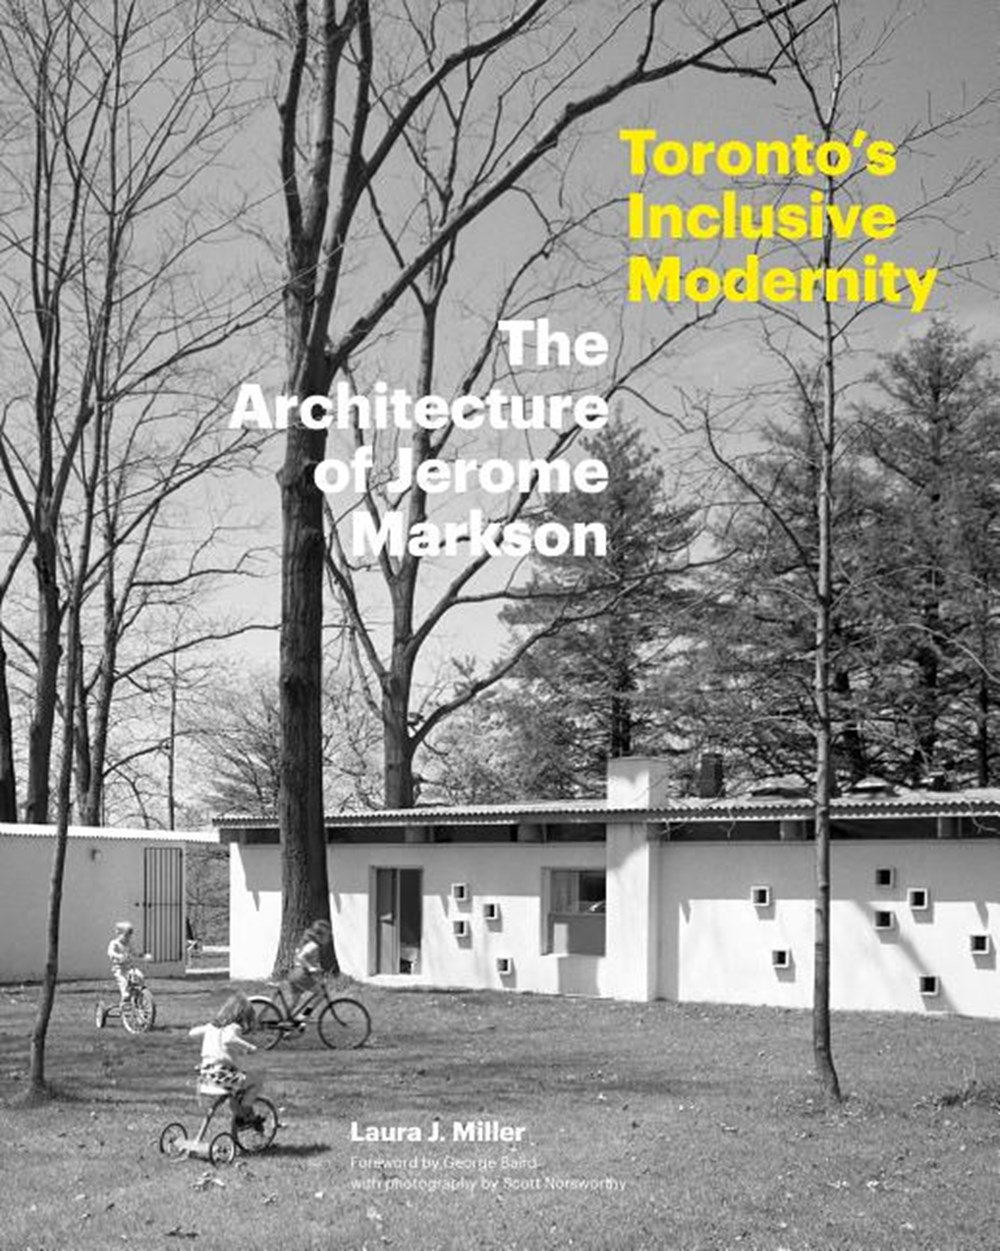 Toronto's Inclusive Modernity The Architecture of Jerome Markson